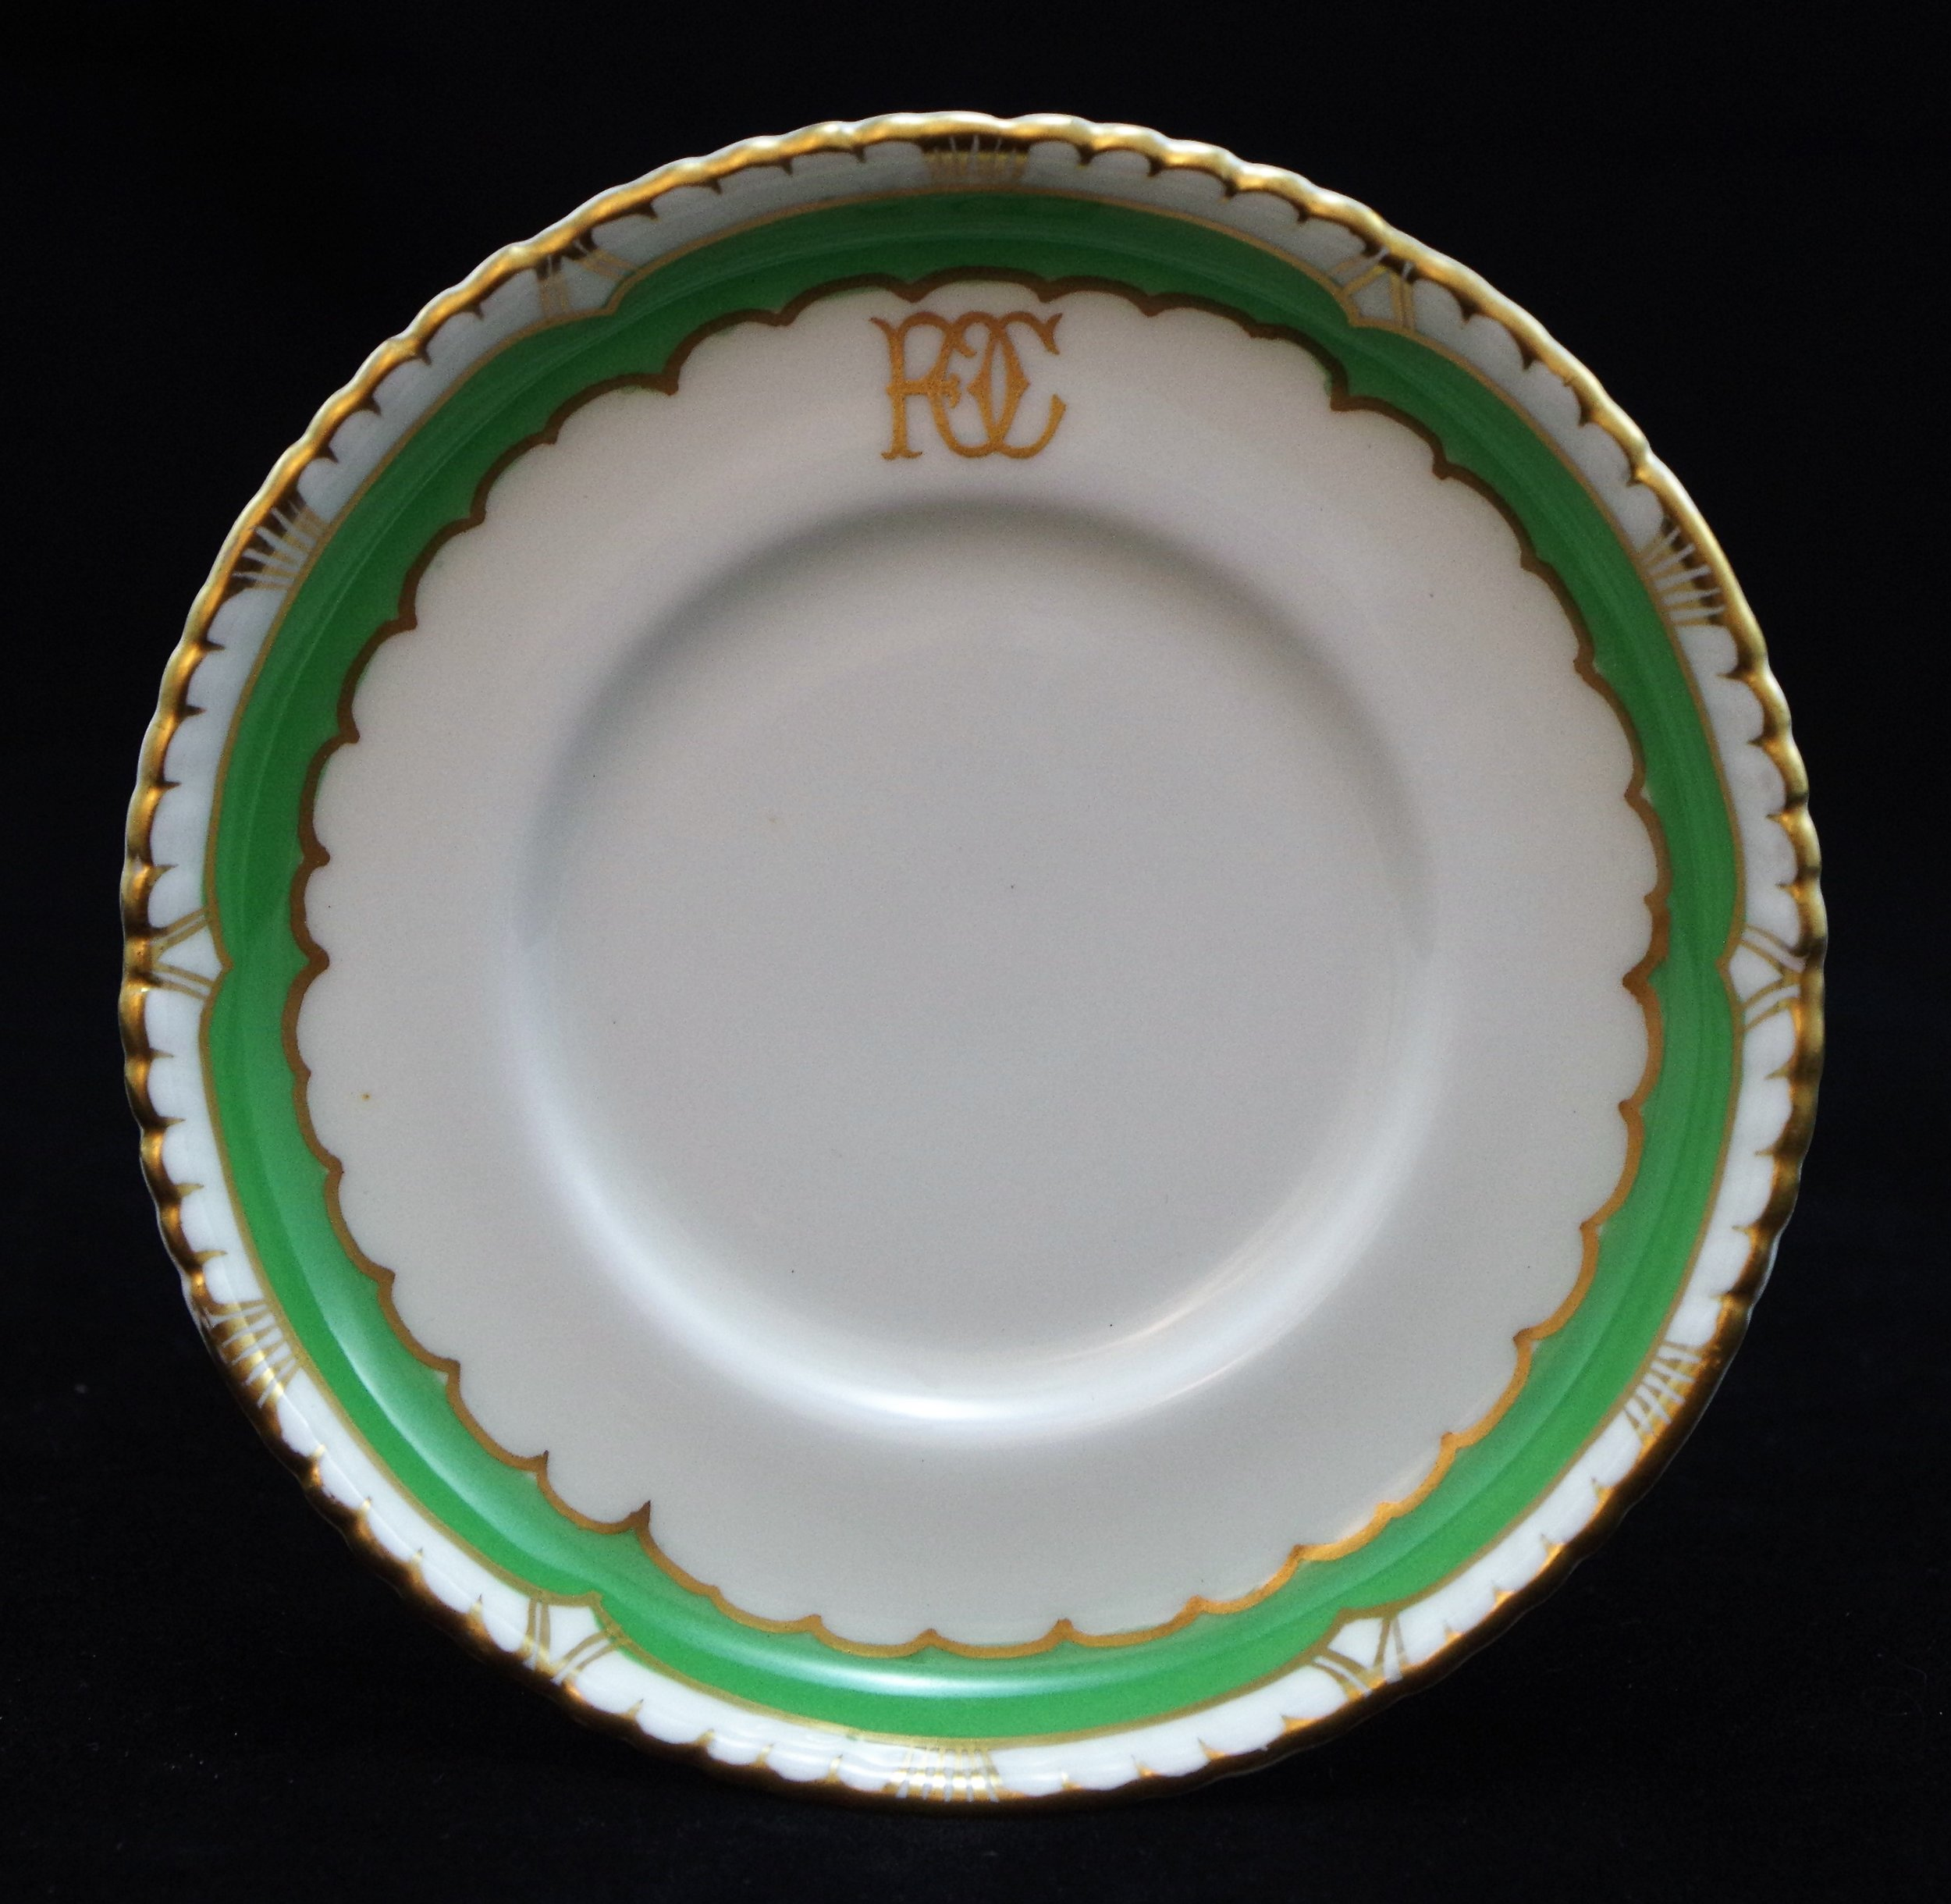 royal-crown-derby-saucer-gadroon-green-ground-FOC-monogram-A968